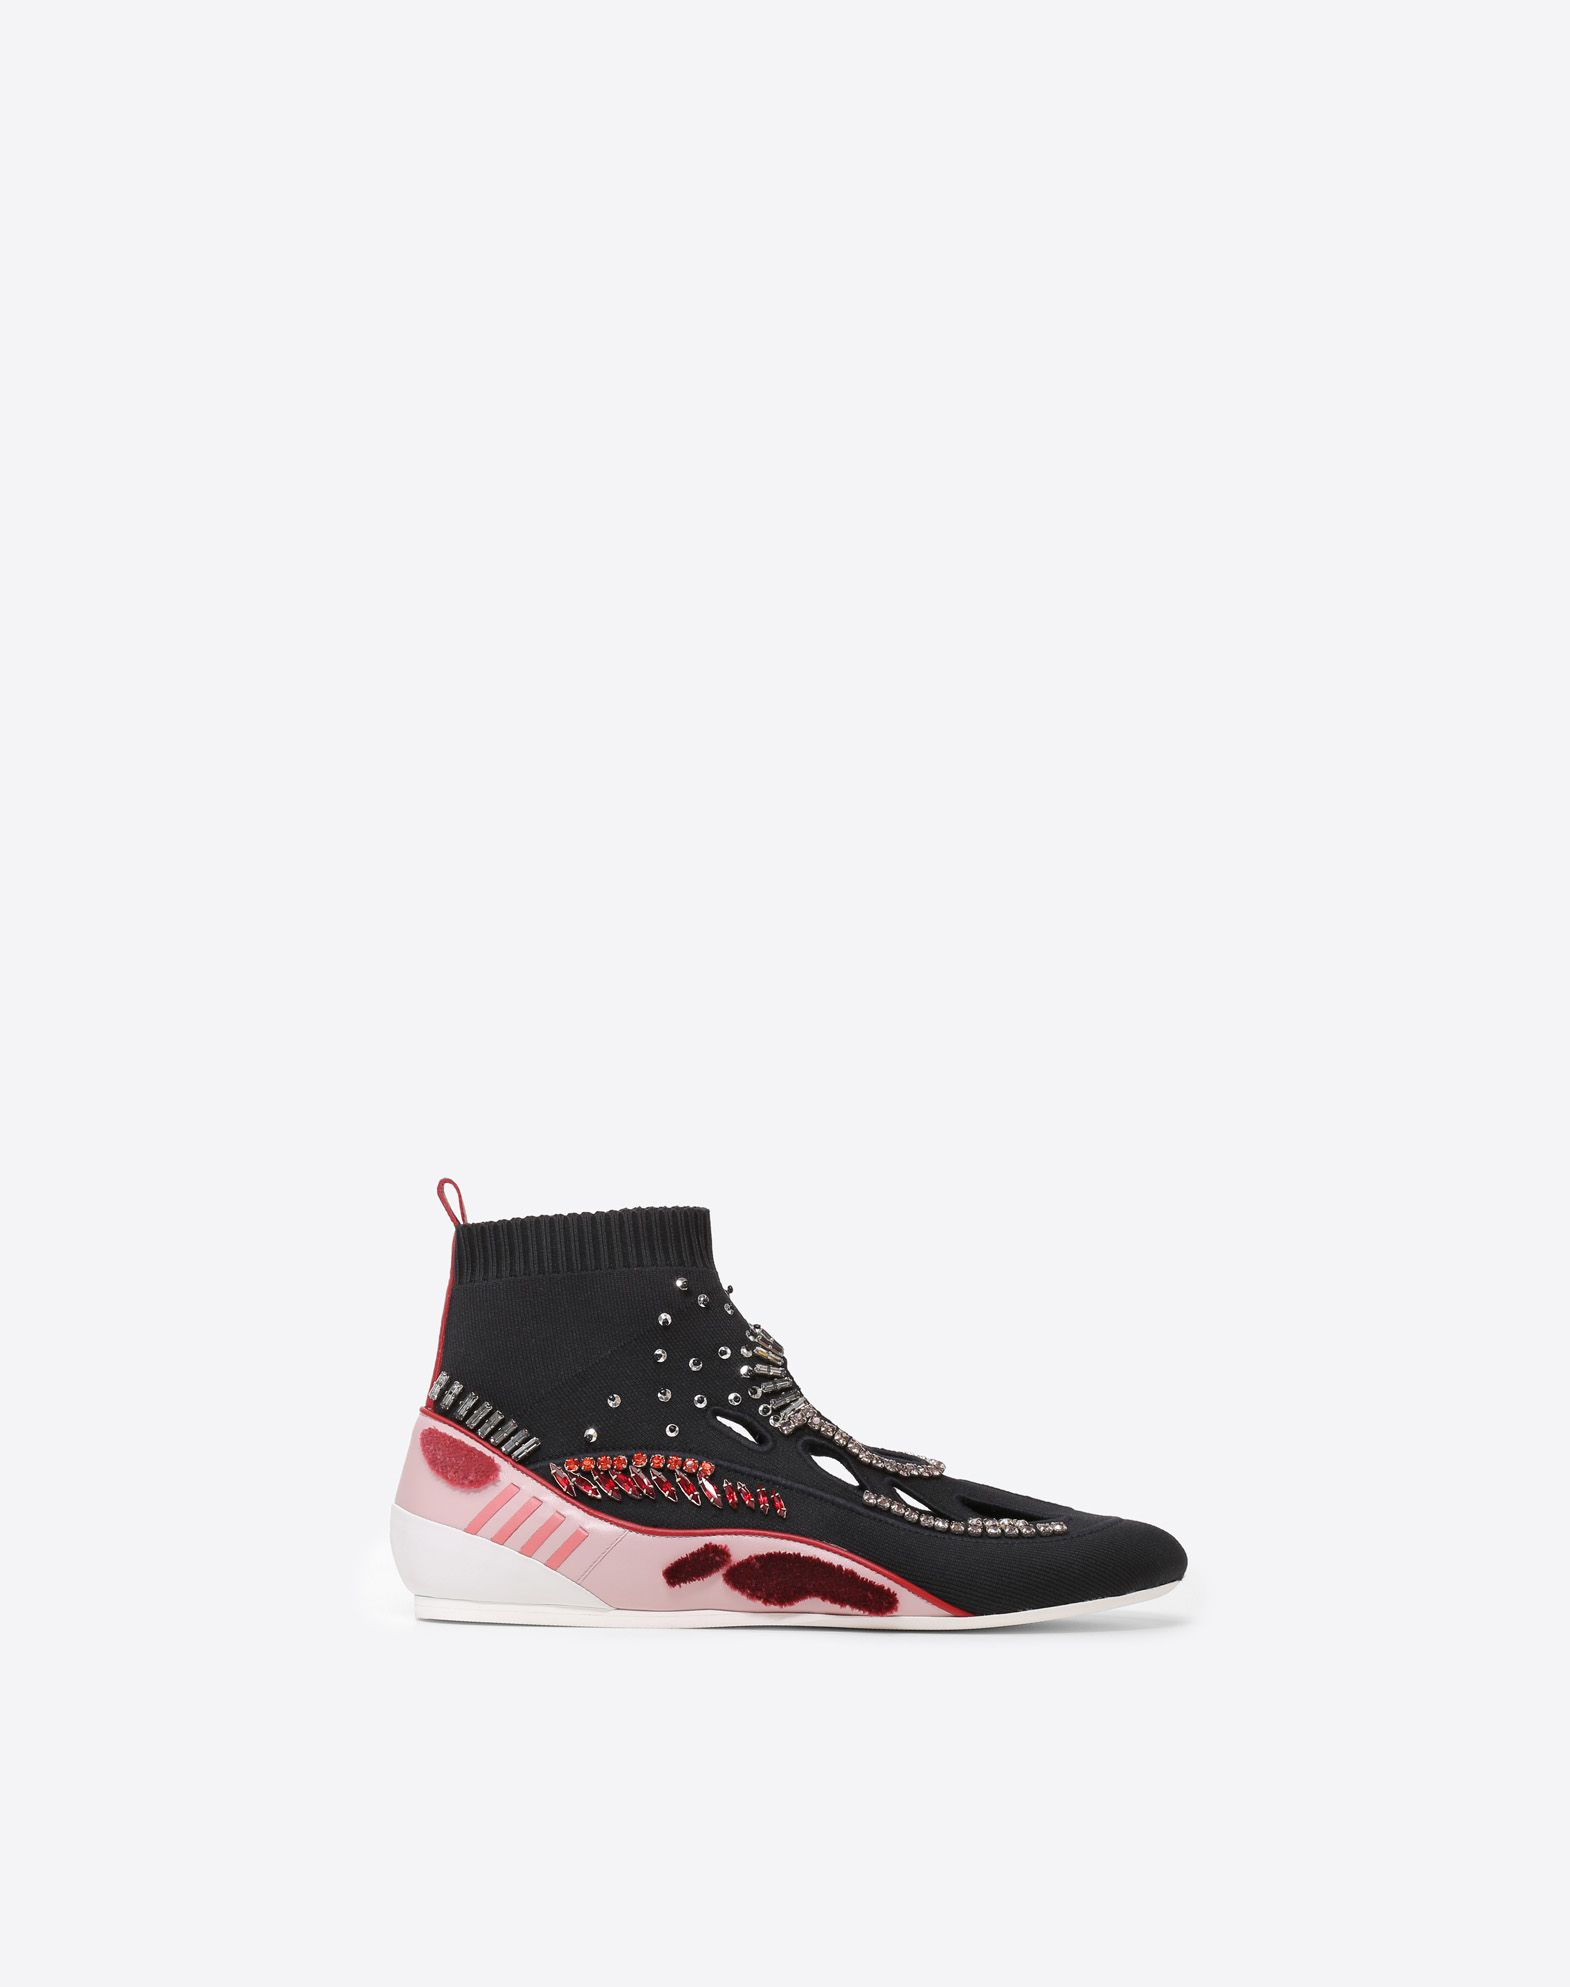 VALENTINO Contrasting applications Lightweight sweater Round toeline Rubber sole  11440484xa